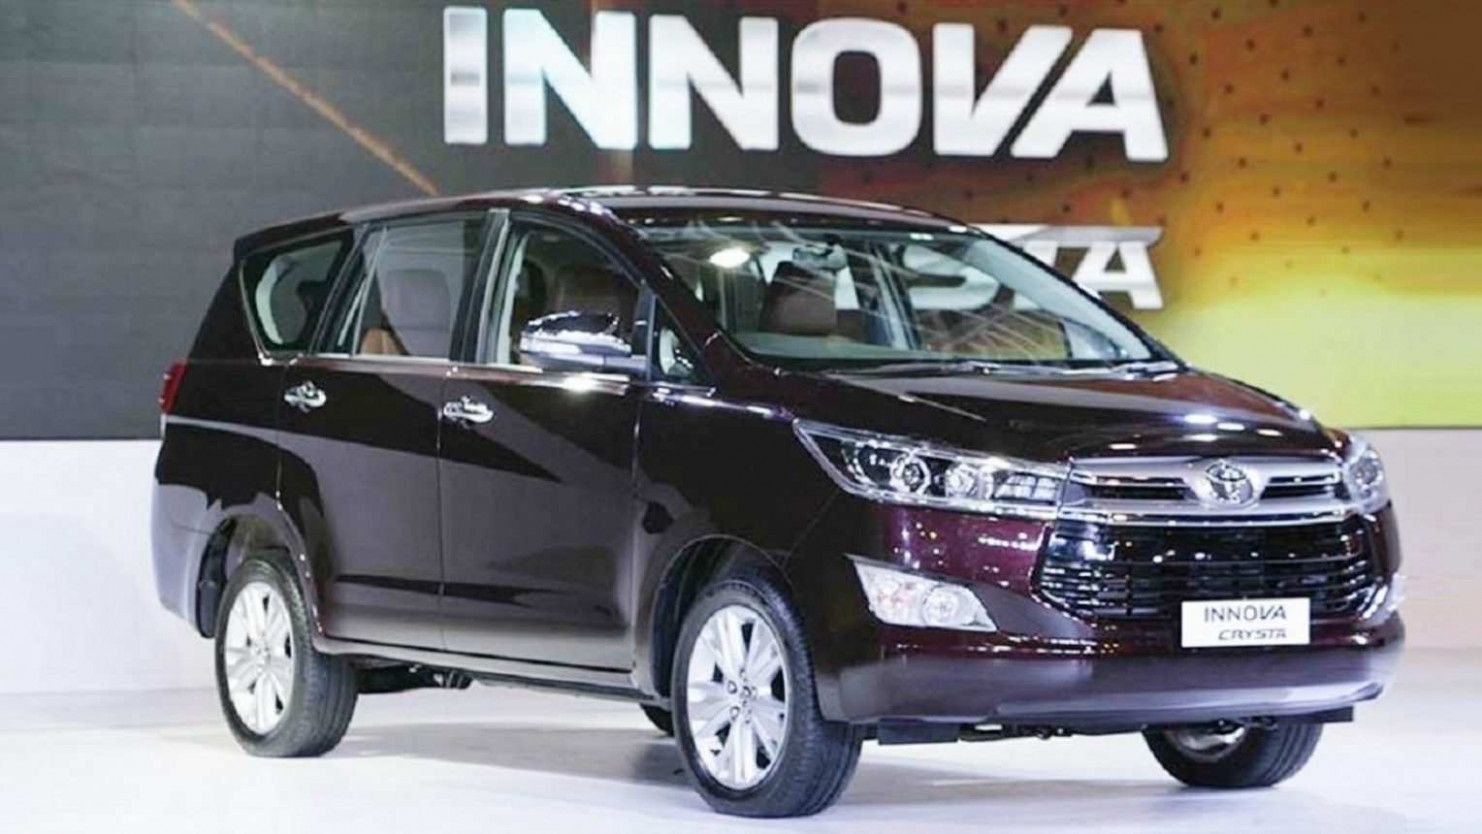 Toyota Innova 2020 Philippines Prices Di 2020 Kijang